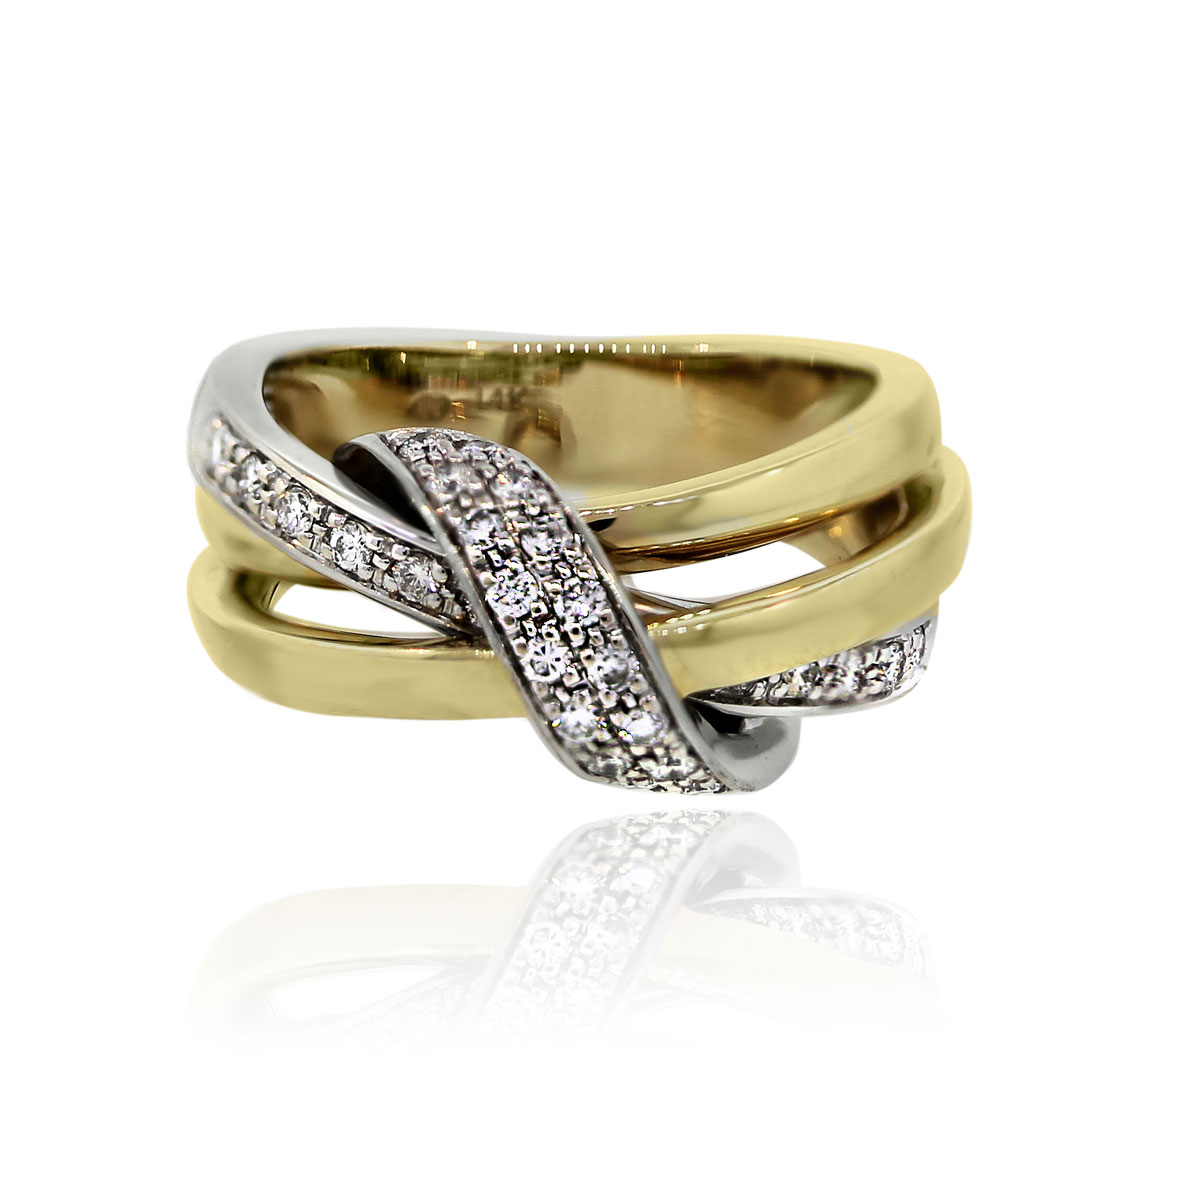 You are viewing this 14K Two Tone Gold Crossover Diamond Ring!